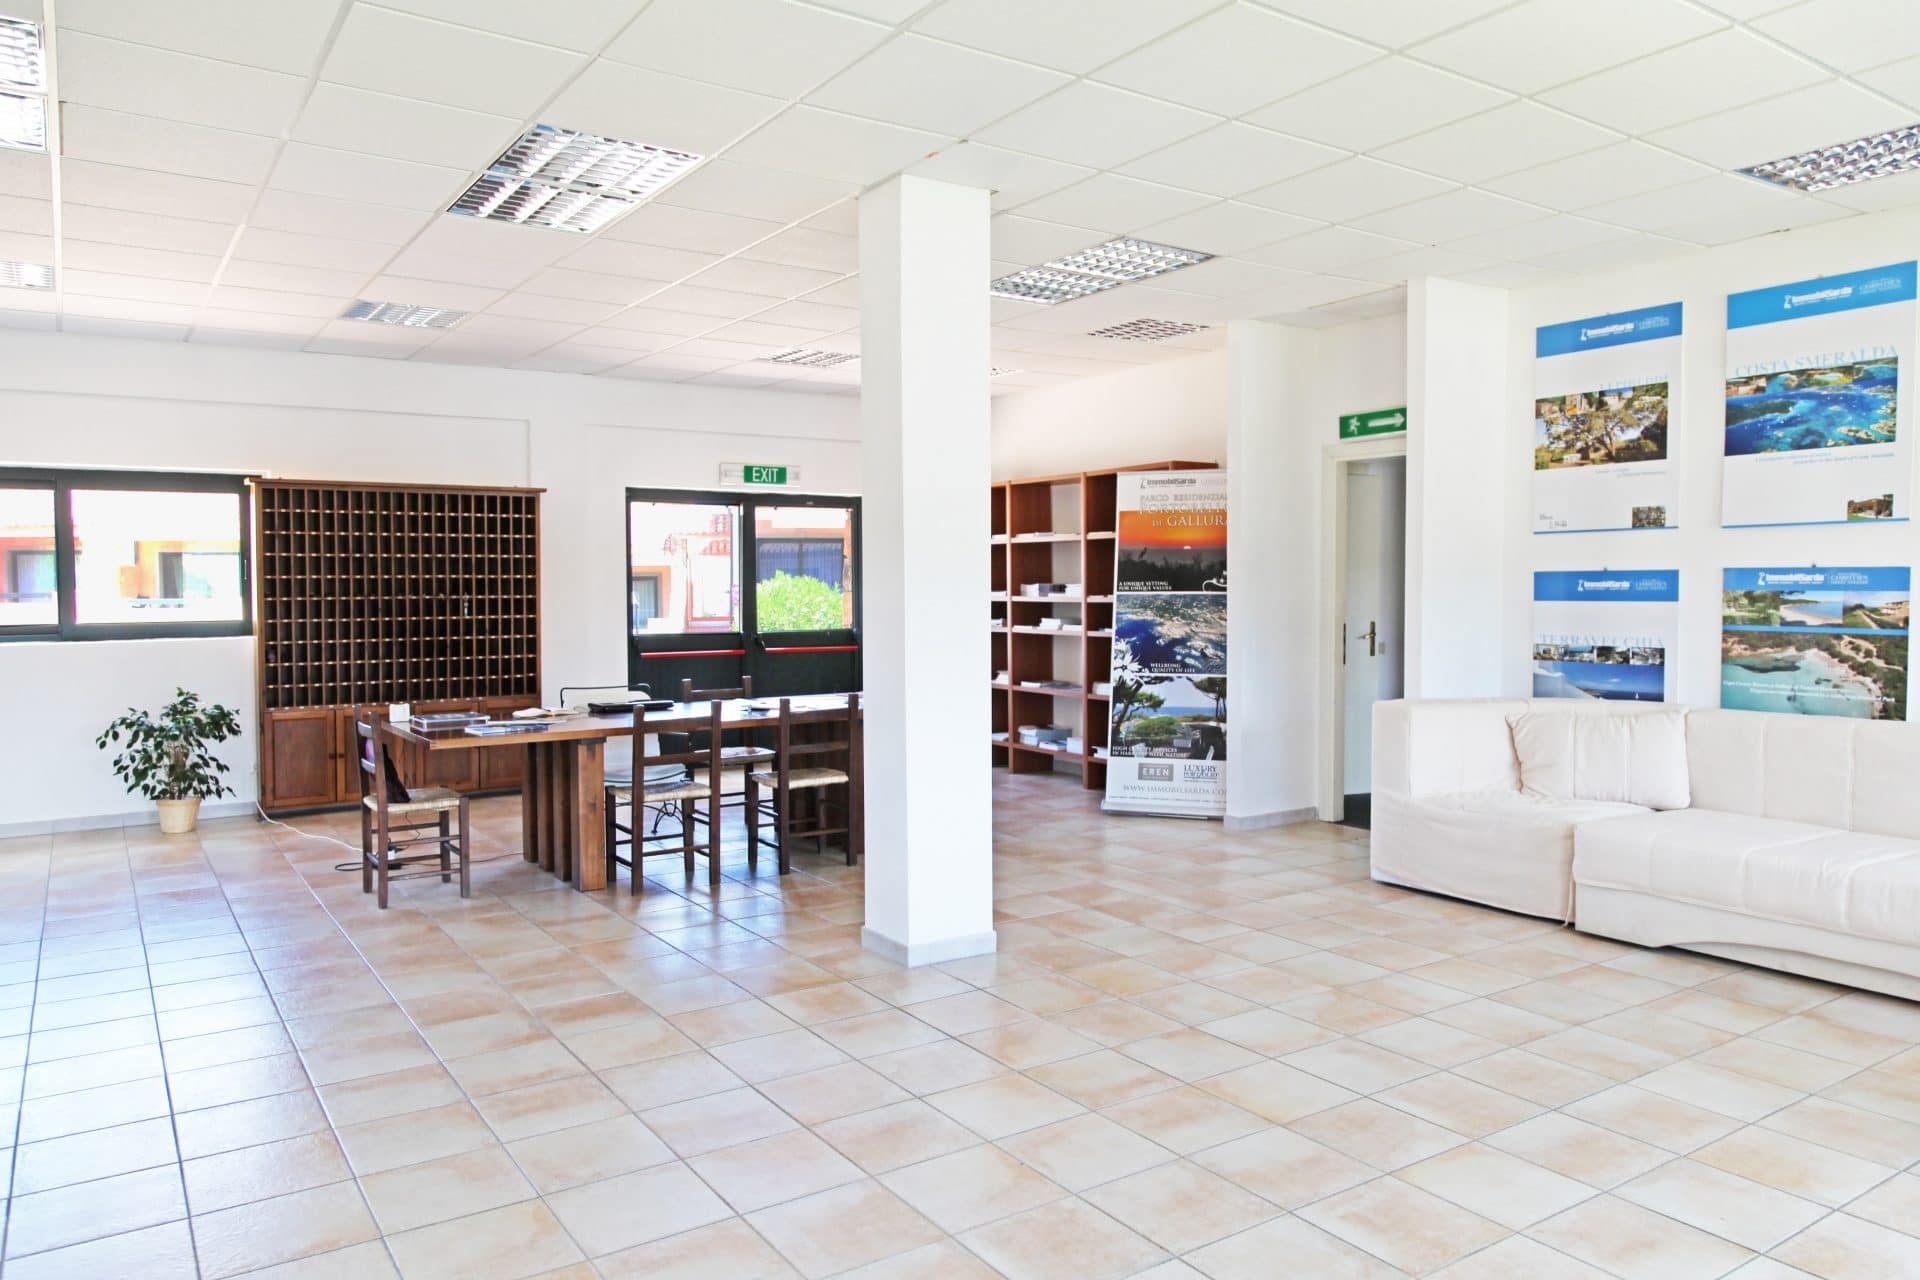 Immobilsarda inaugurates the new Office of Palau